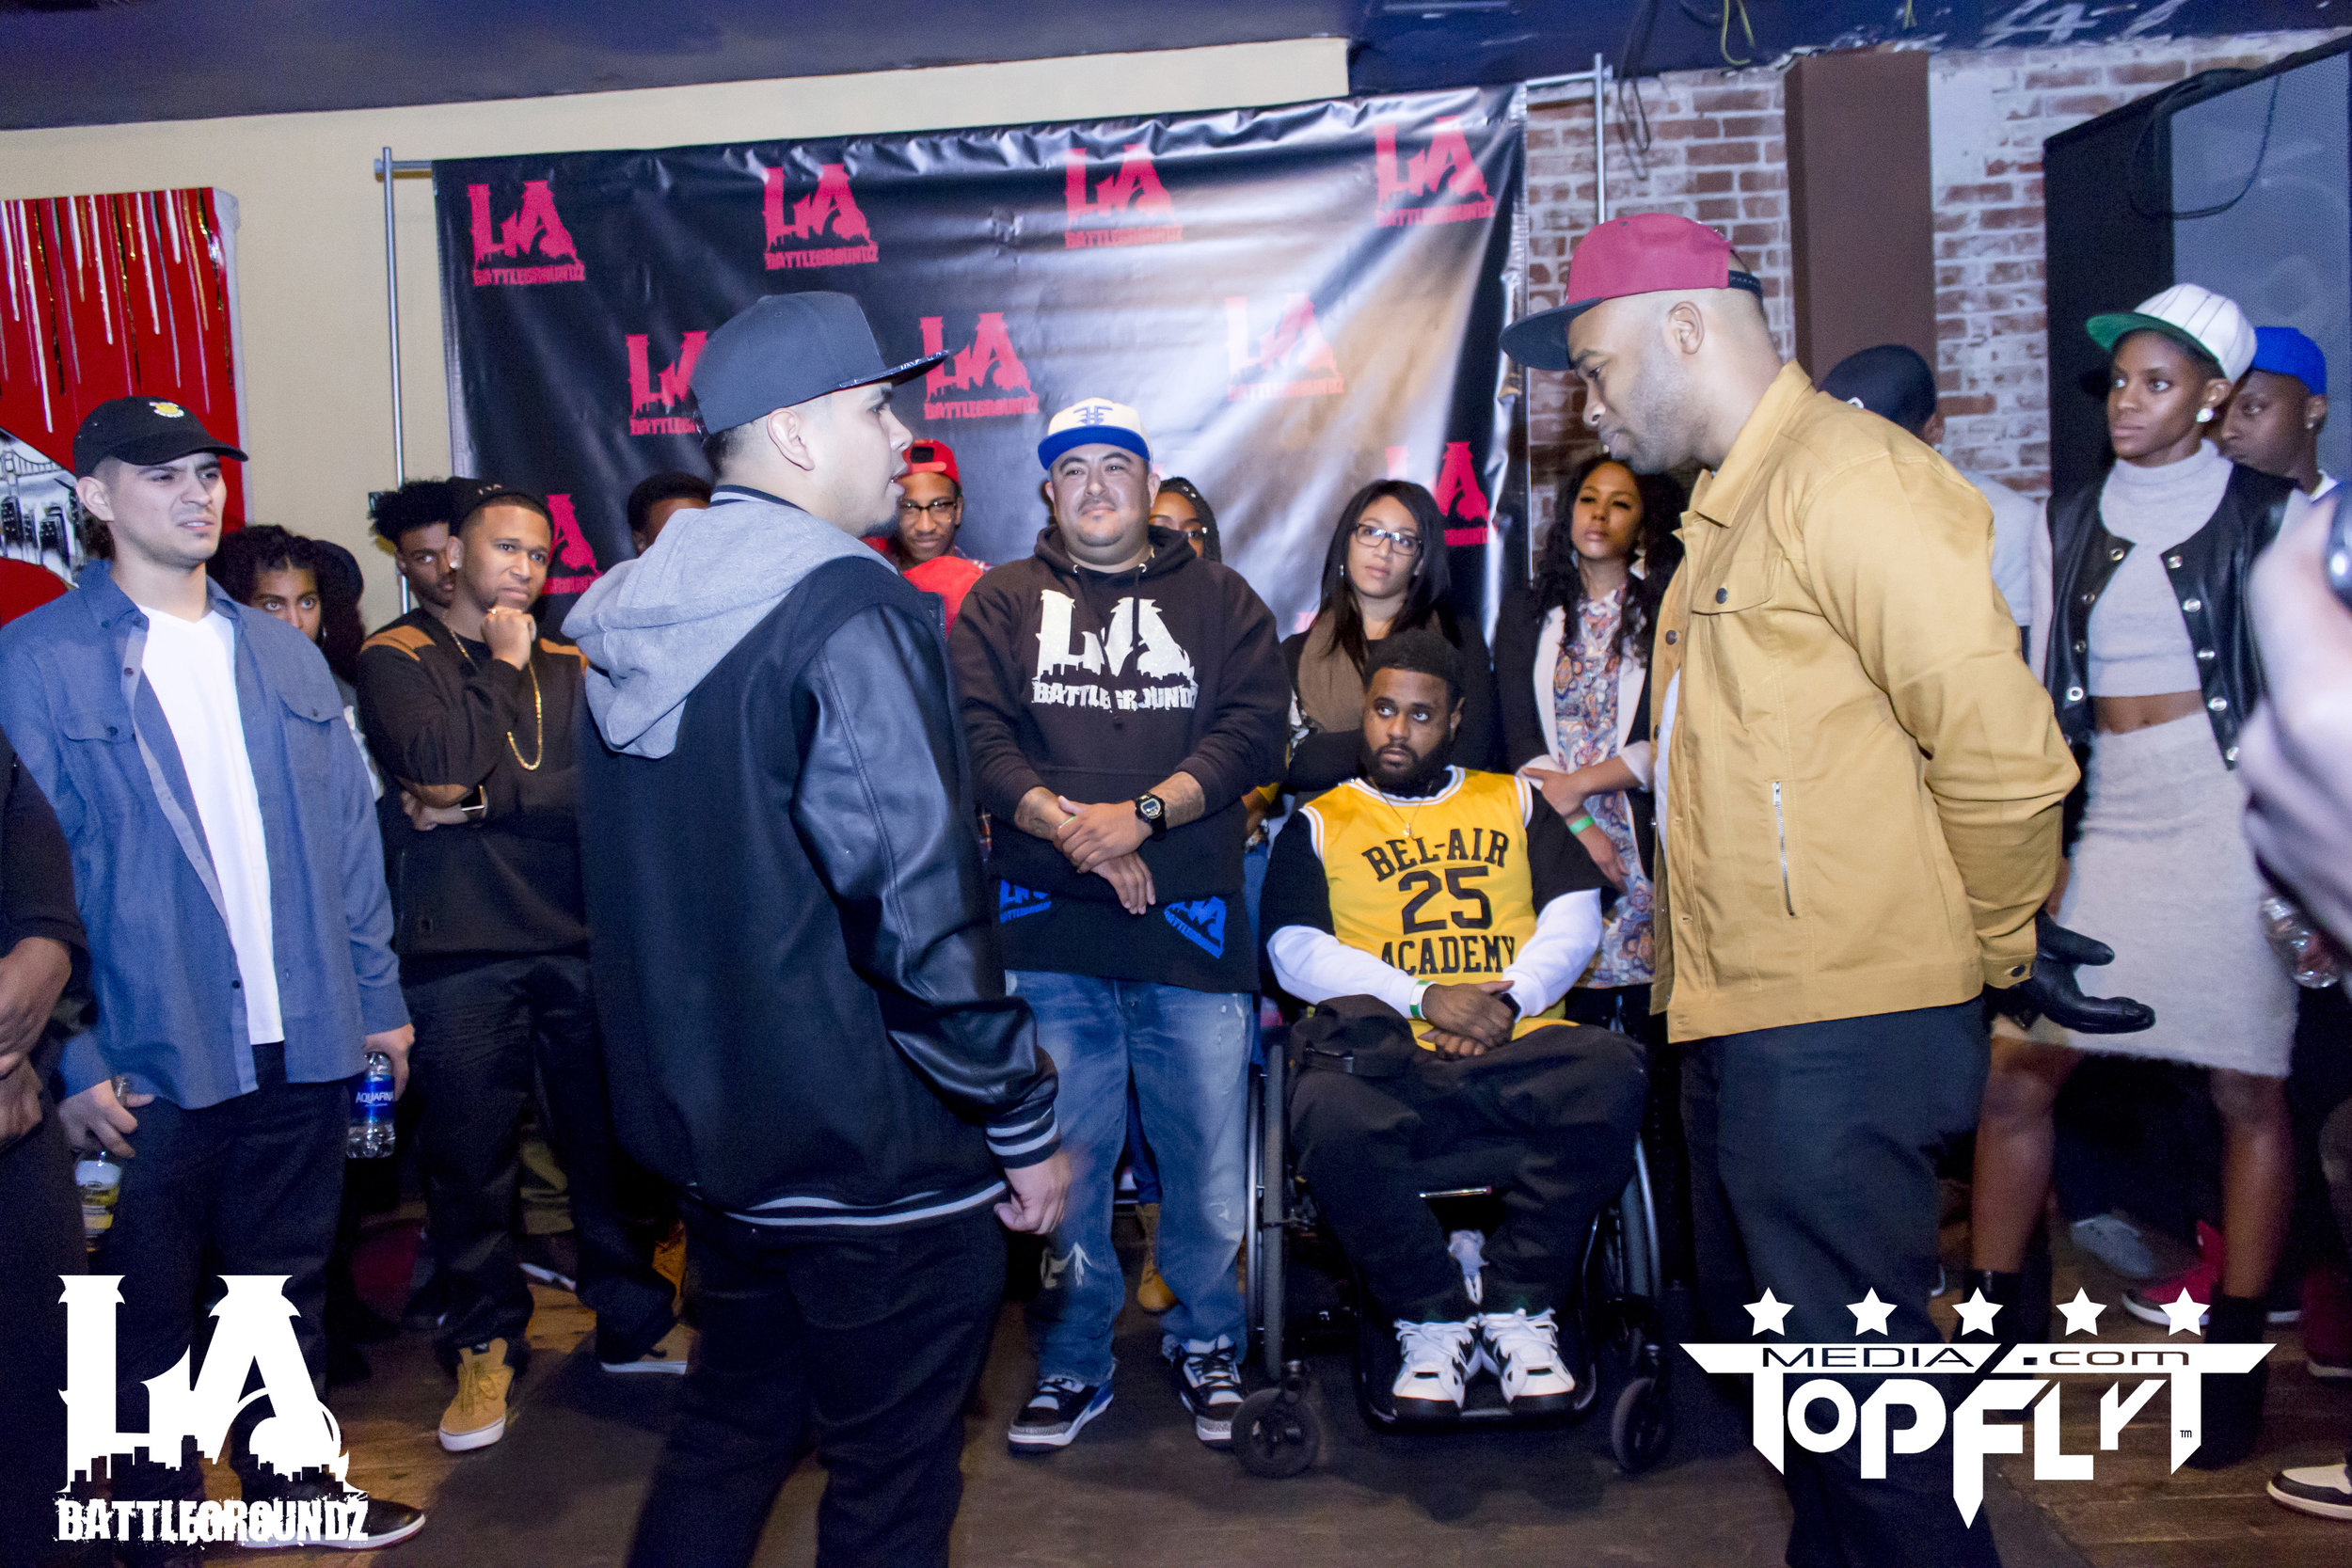 LA Battlegroundz - Decembarfest - The Christening_42.jpg